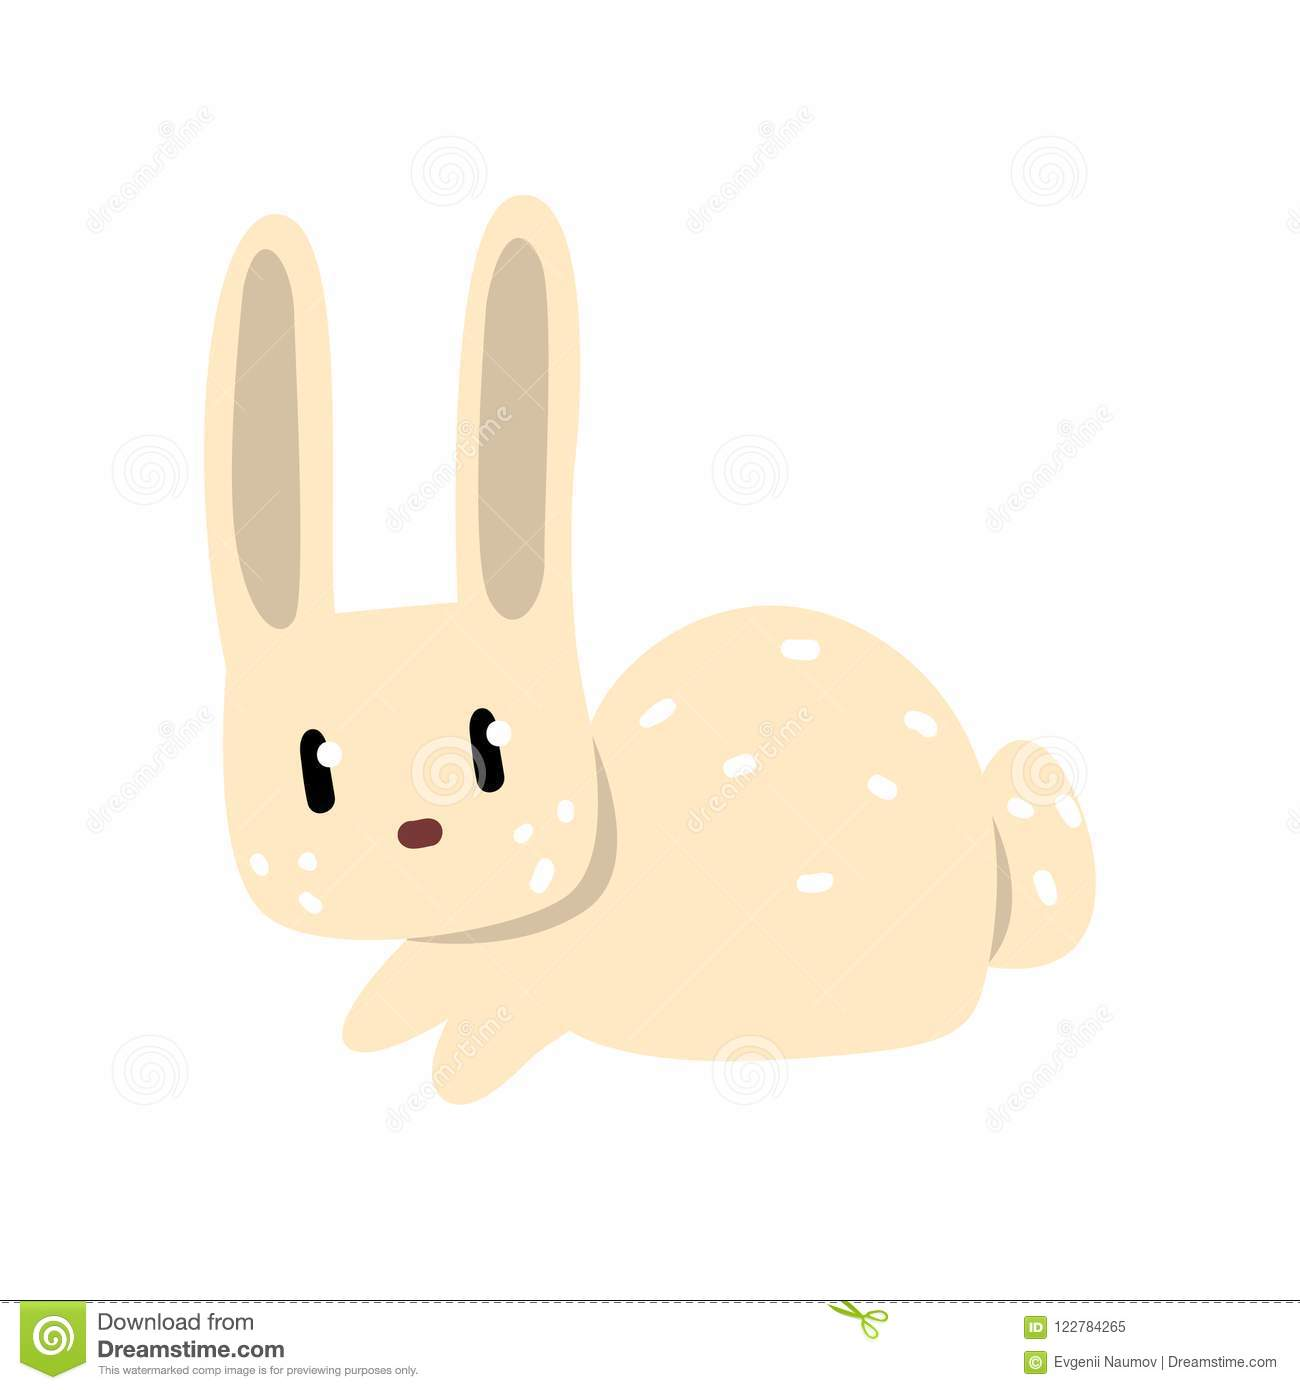 Cute white little rabbit cartoon character vector Illustration on a white background